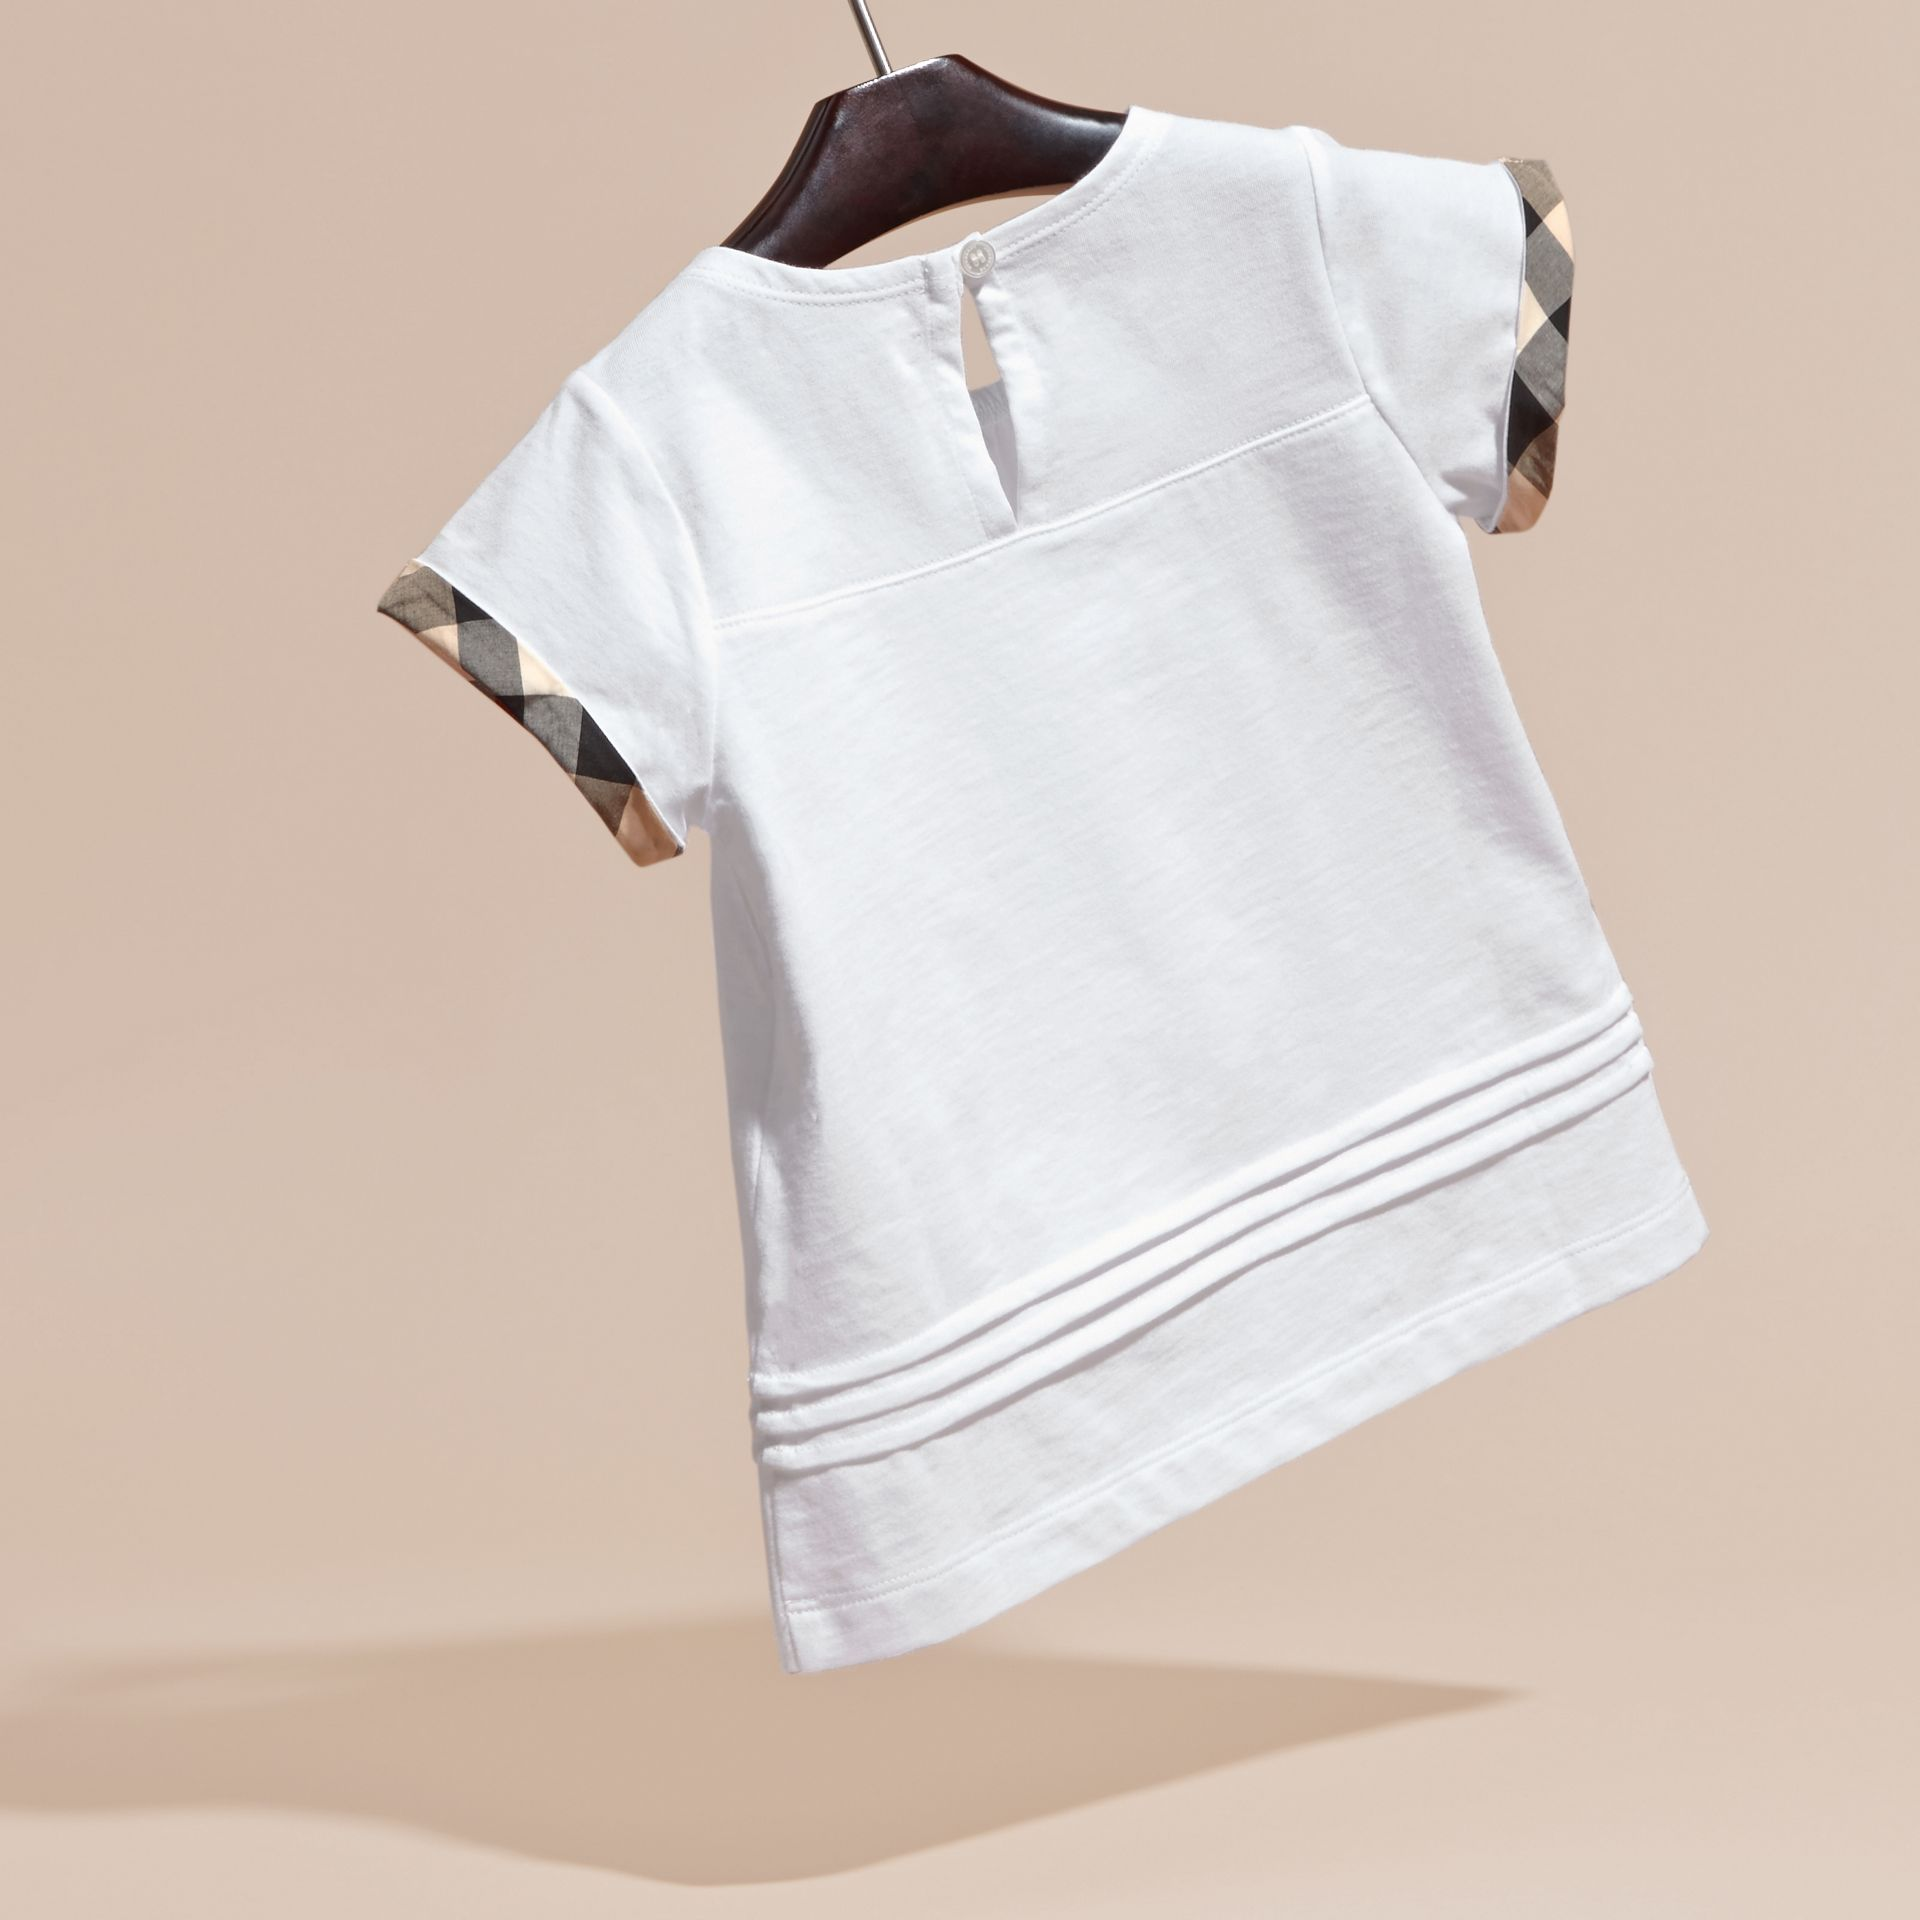 Pleat and Check Detail Cotton T-shirt in White - Girl | Burberry Australia - gallery image 4